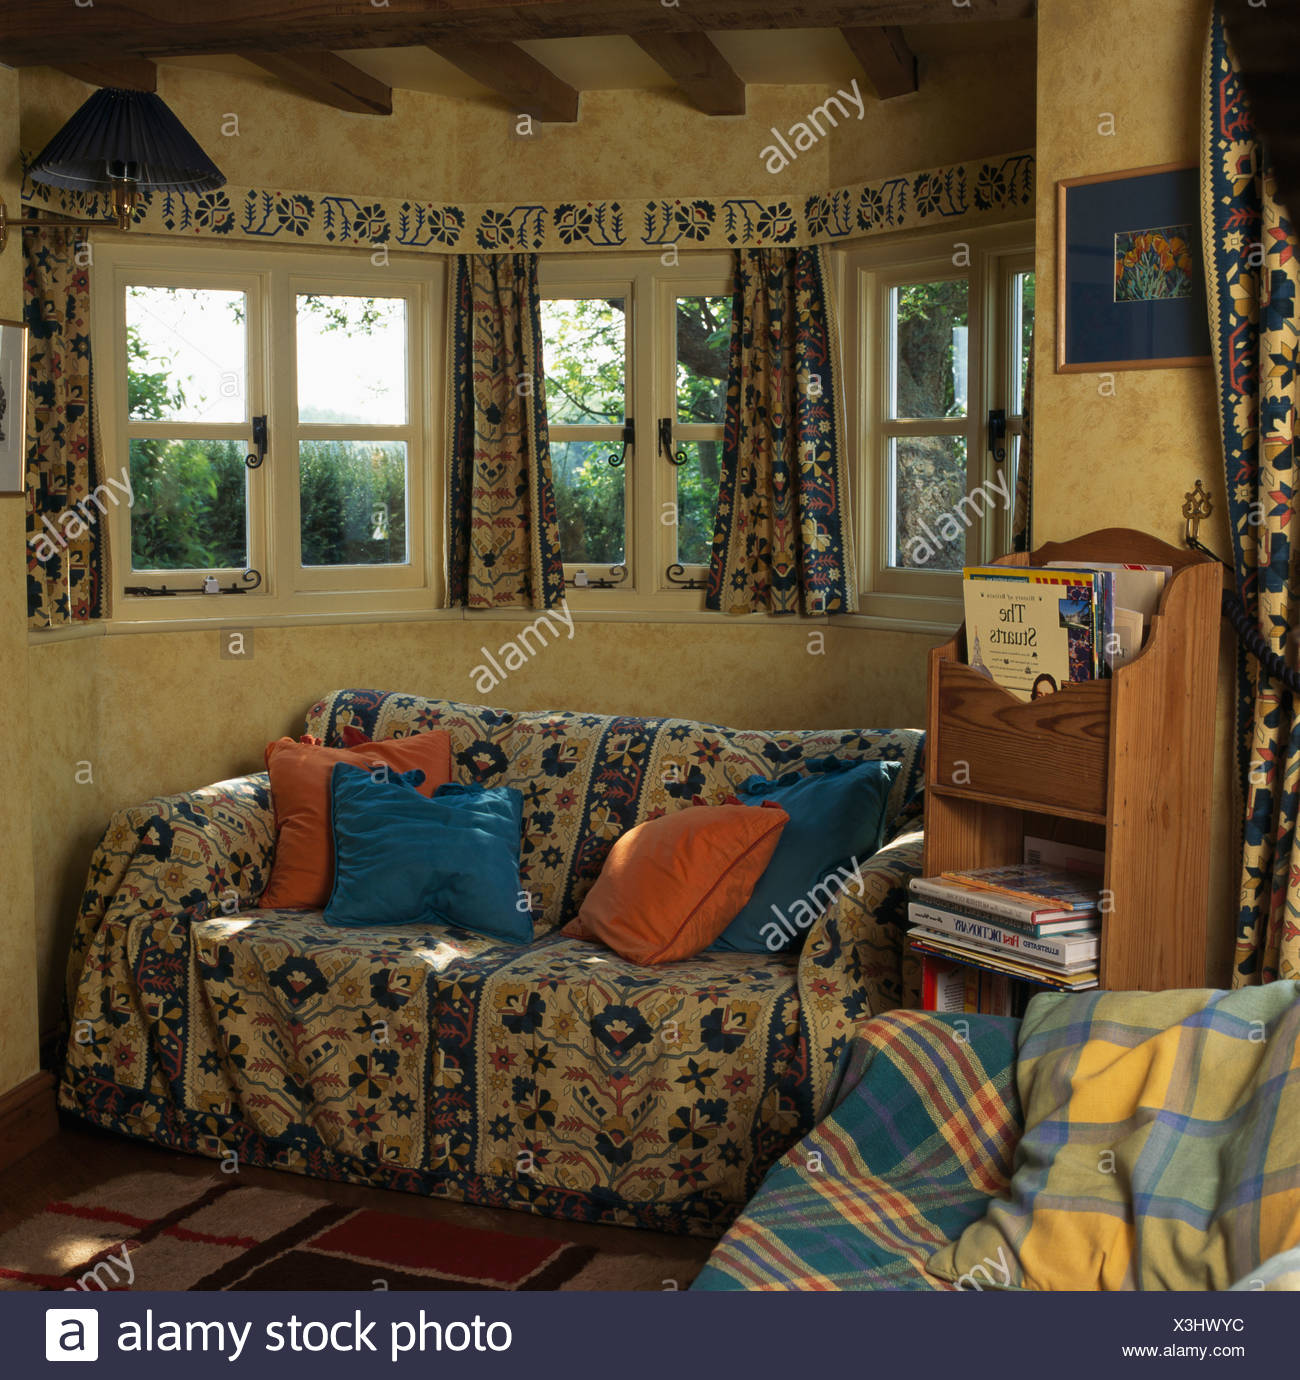 Wallpaper border and small windows above sofa covered with patterned ...